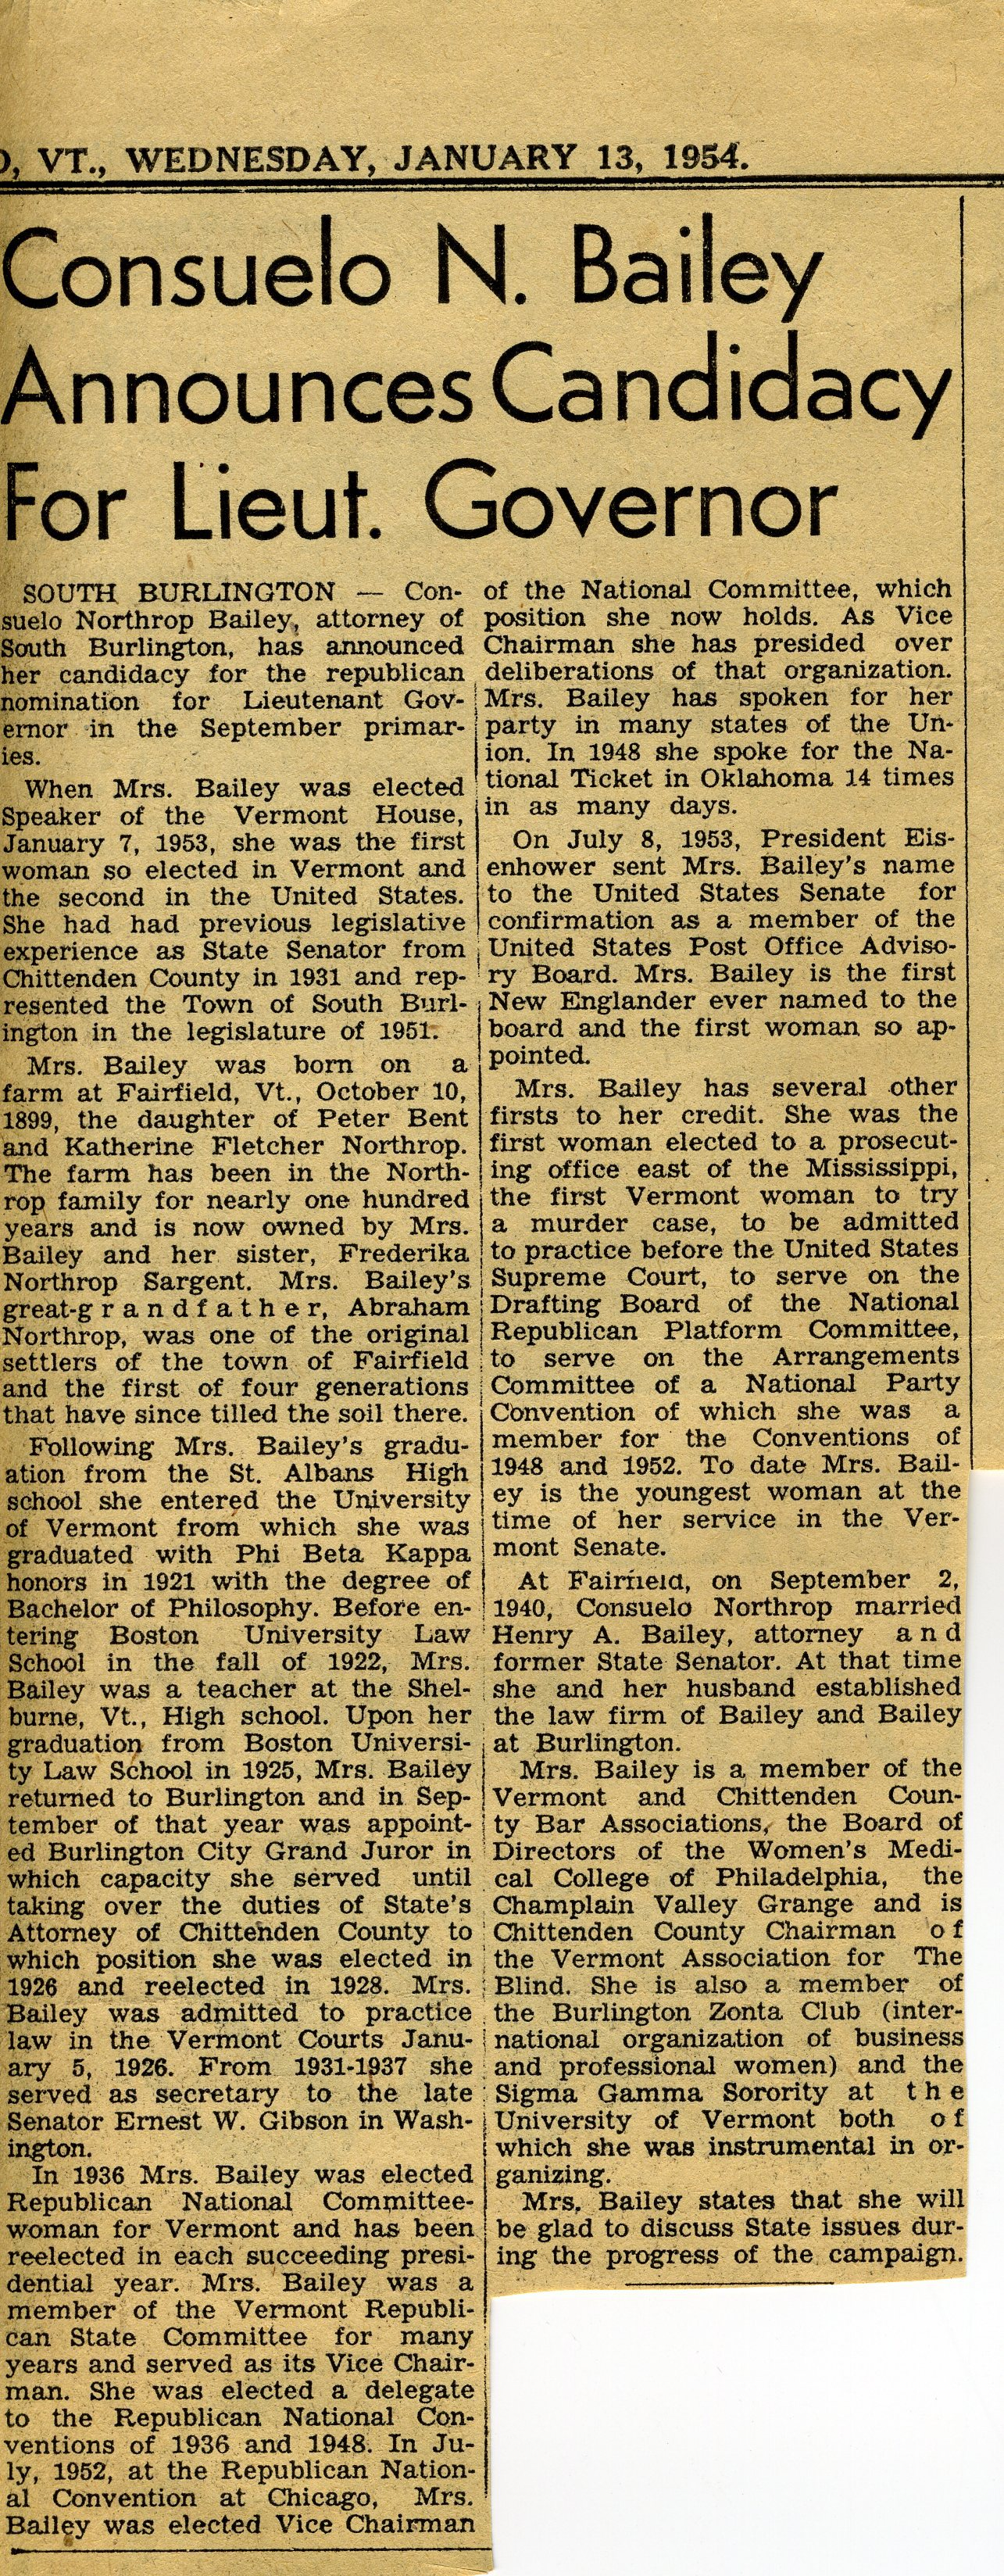 1954 January 13, Springfield Reporter, CNB Announces Candidacy